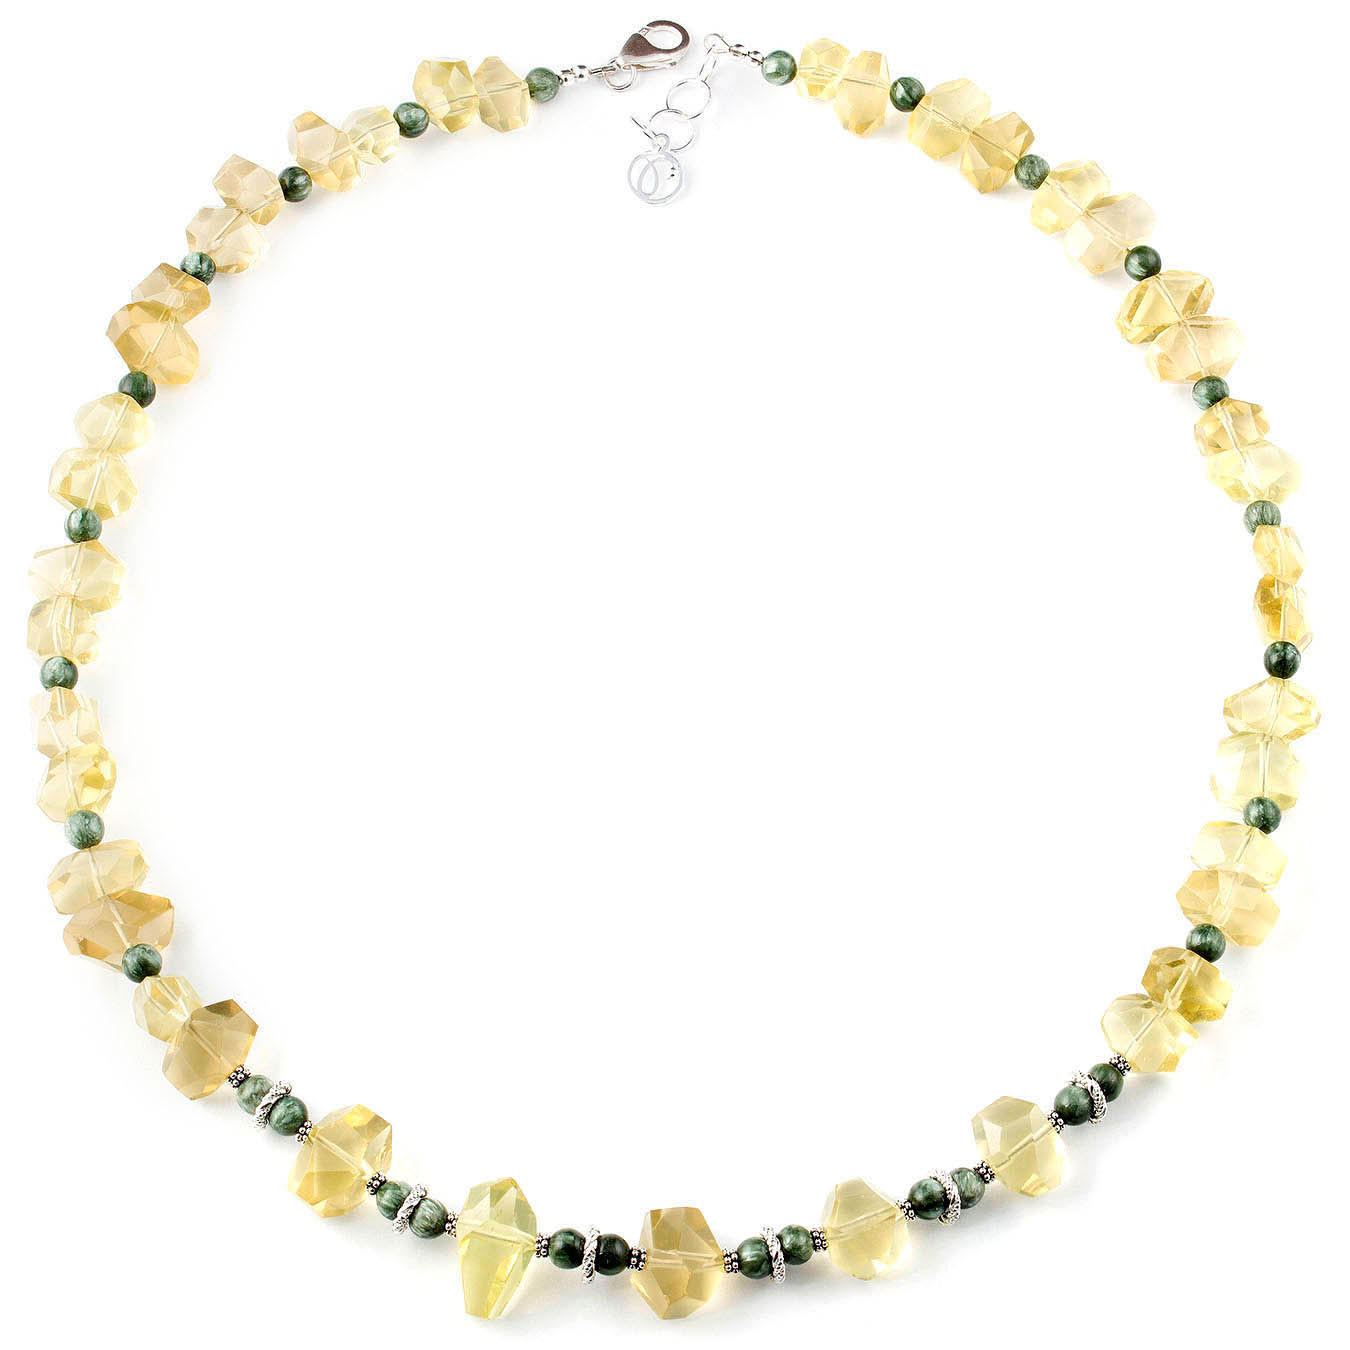 Handcrafted bead statement necklace made with quartz and seraphinite